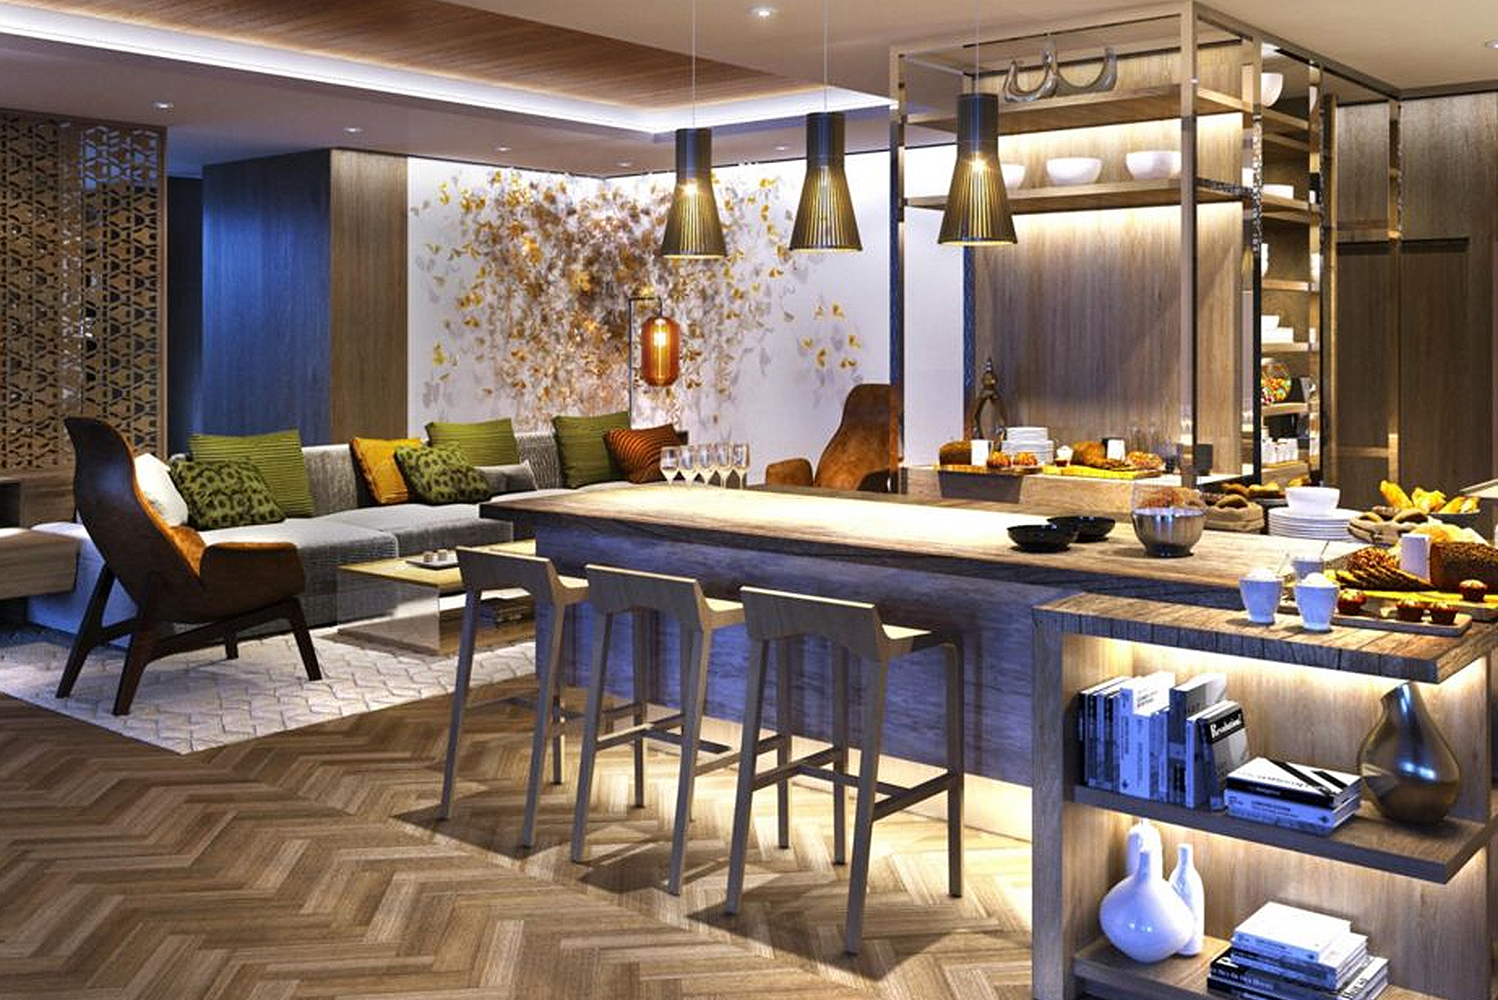 The interiors of the new InterContinental Perth City Centre's restaurant and bar offerings were designed by EDG Design.